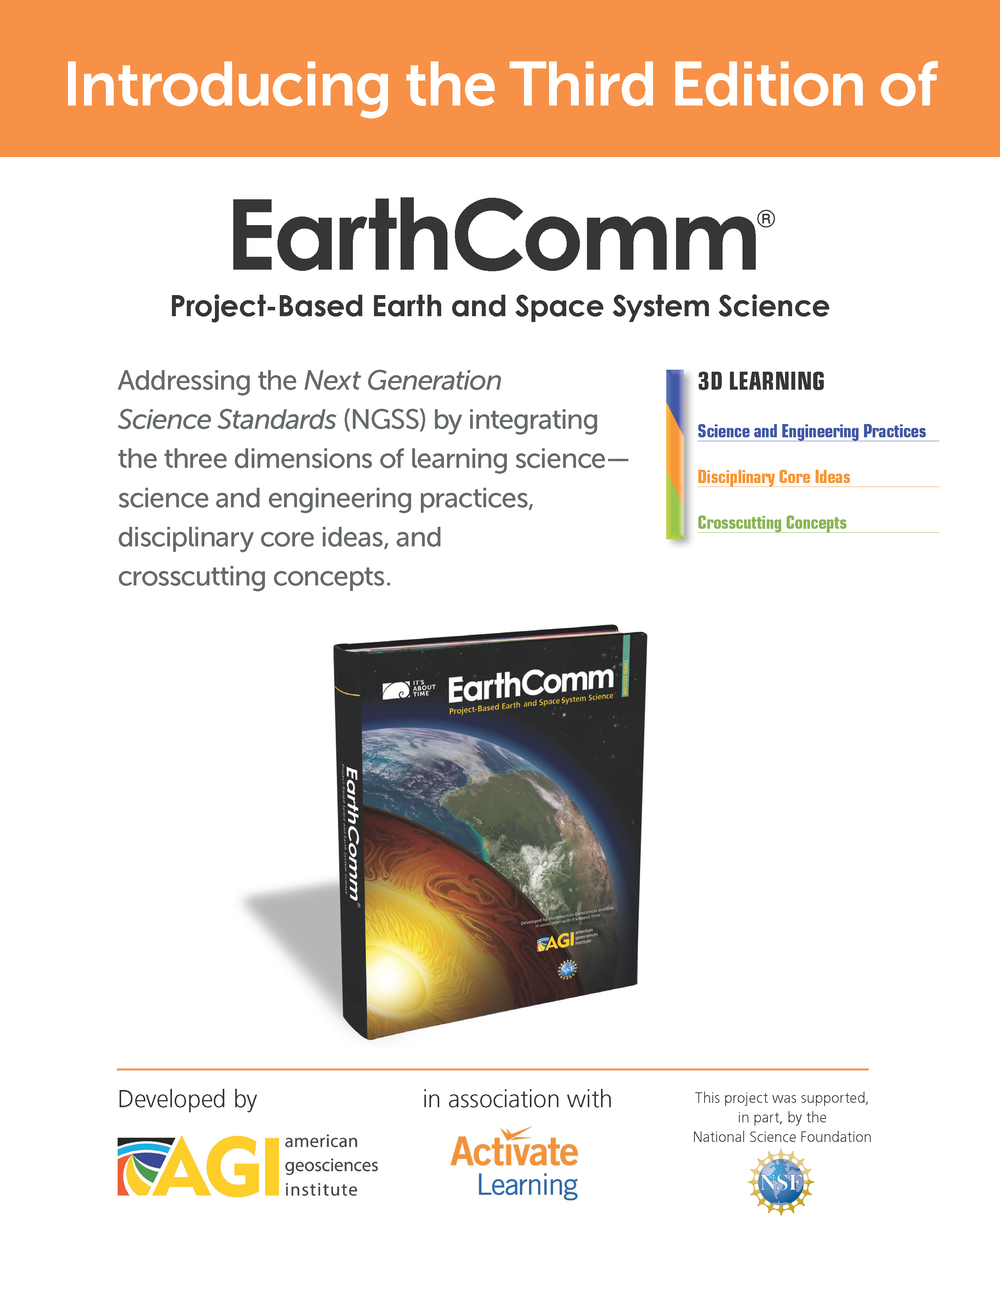 M00029 - EarthComm Handout_Page_5.png